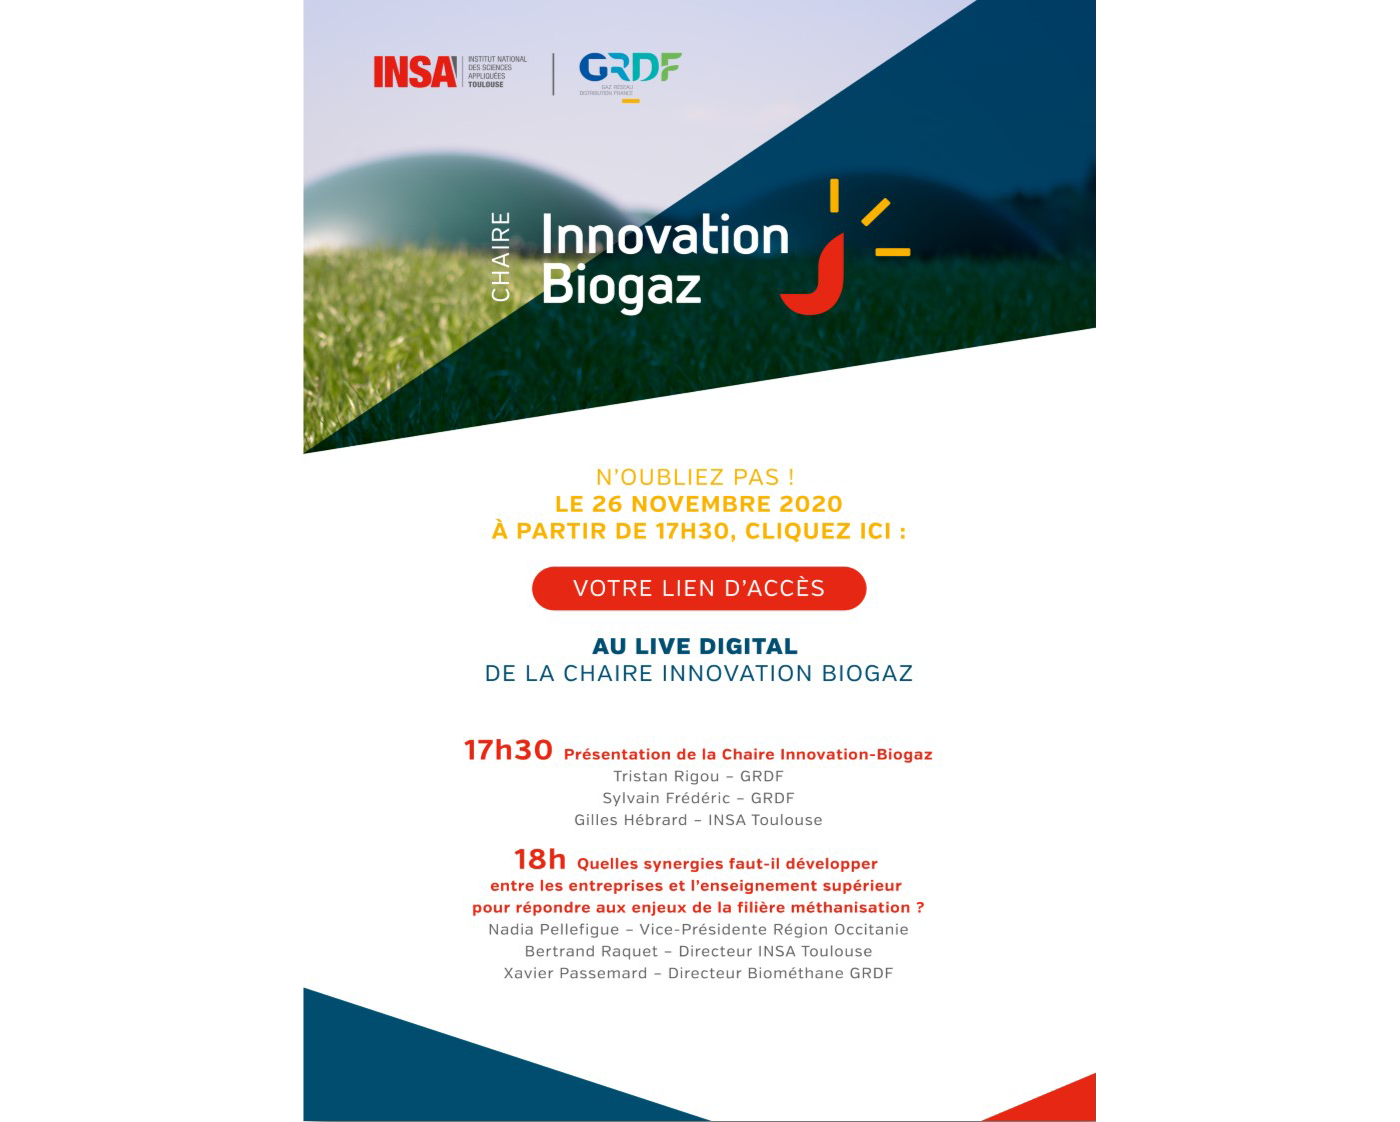 Inauguration de la Chaire Innovation Biogaz GRDF